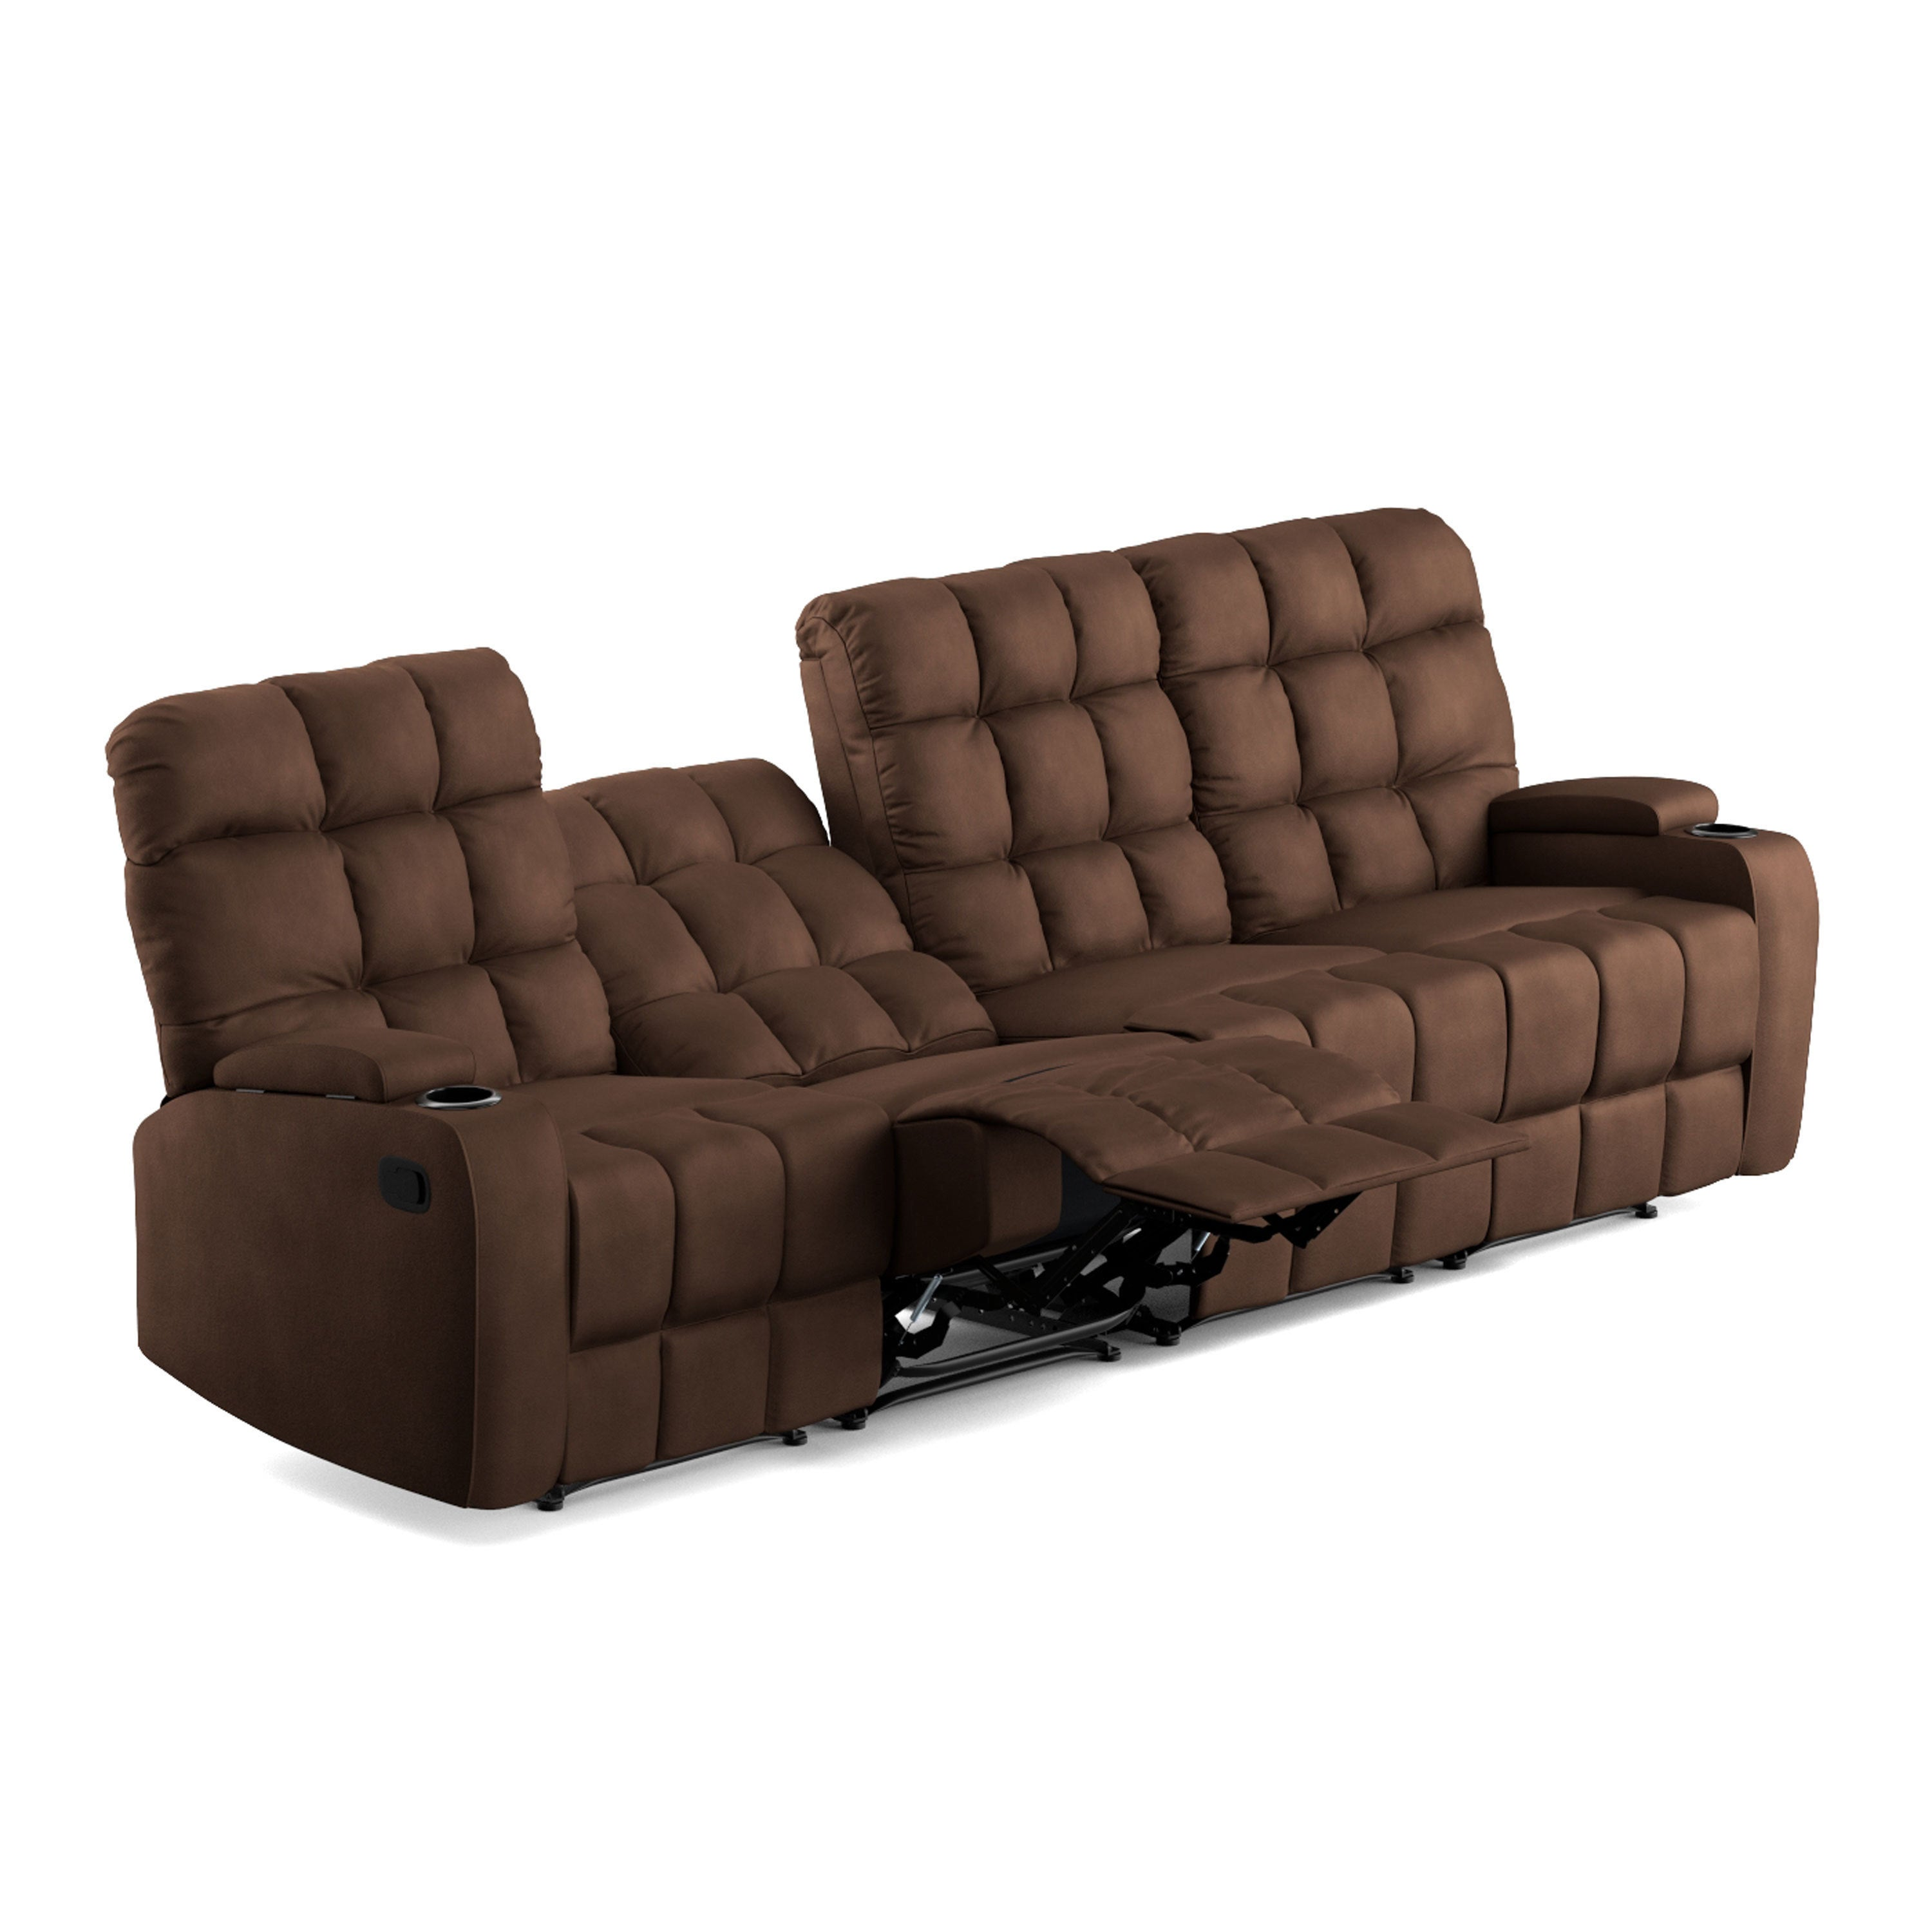 Oliver James Saskia Brown Microfiber 4 Seat Recliner Sofa On Free Shipping Today 20689841